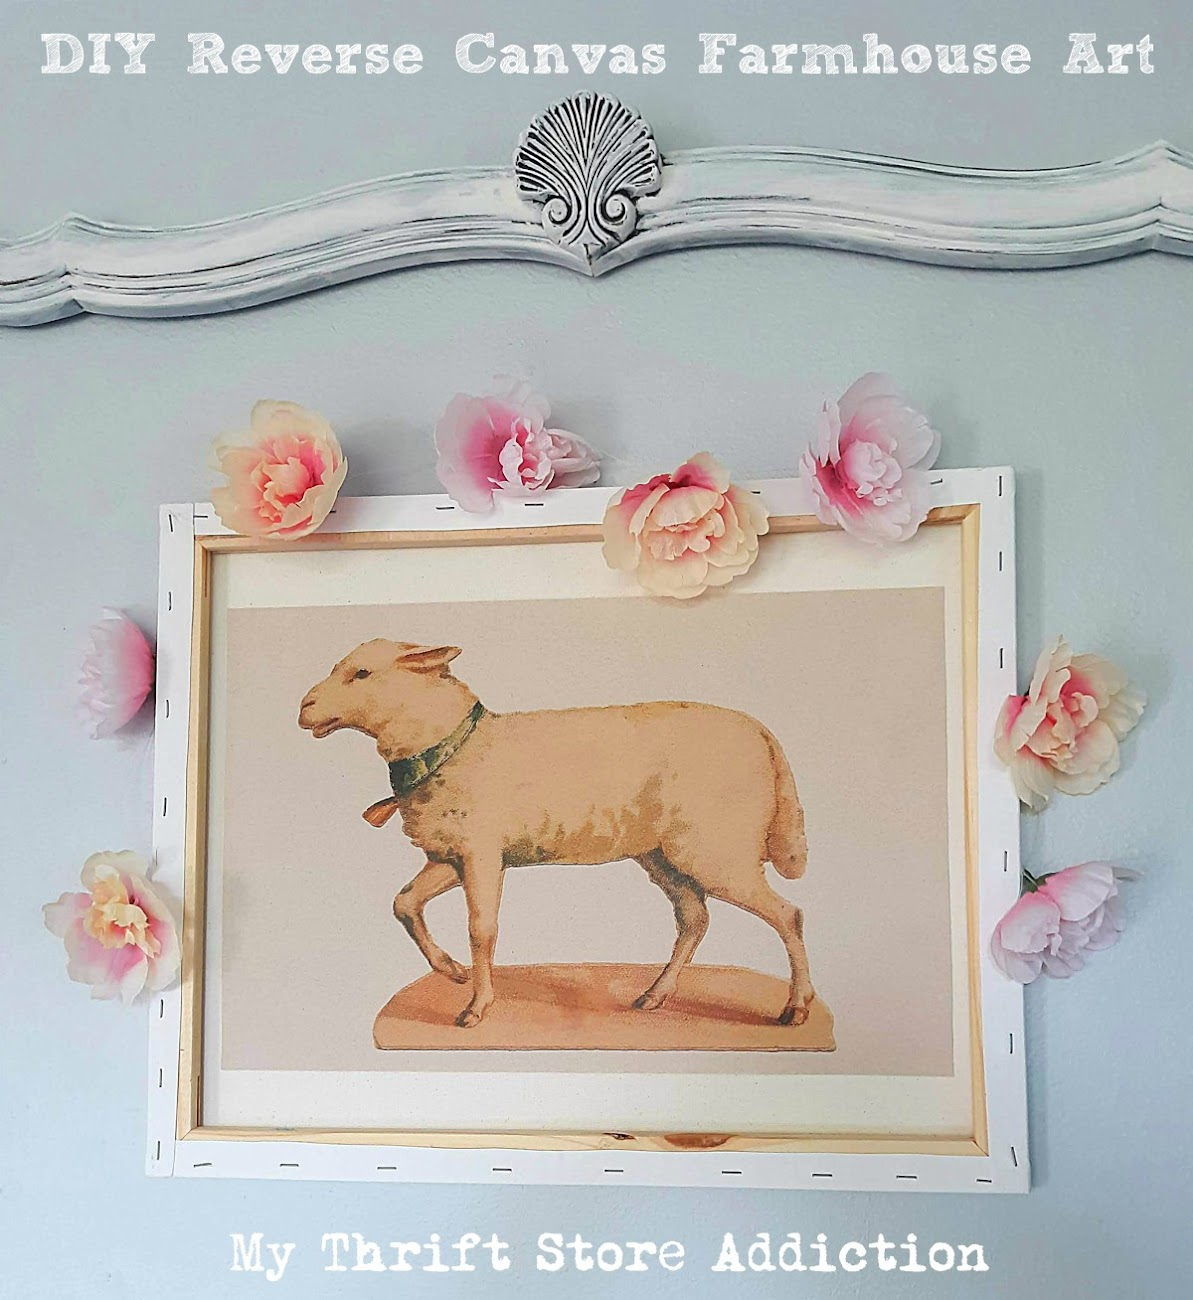 DIY Reverse canvas farmhouse art